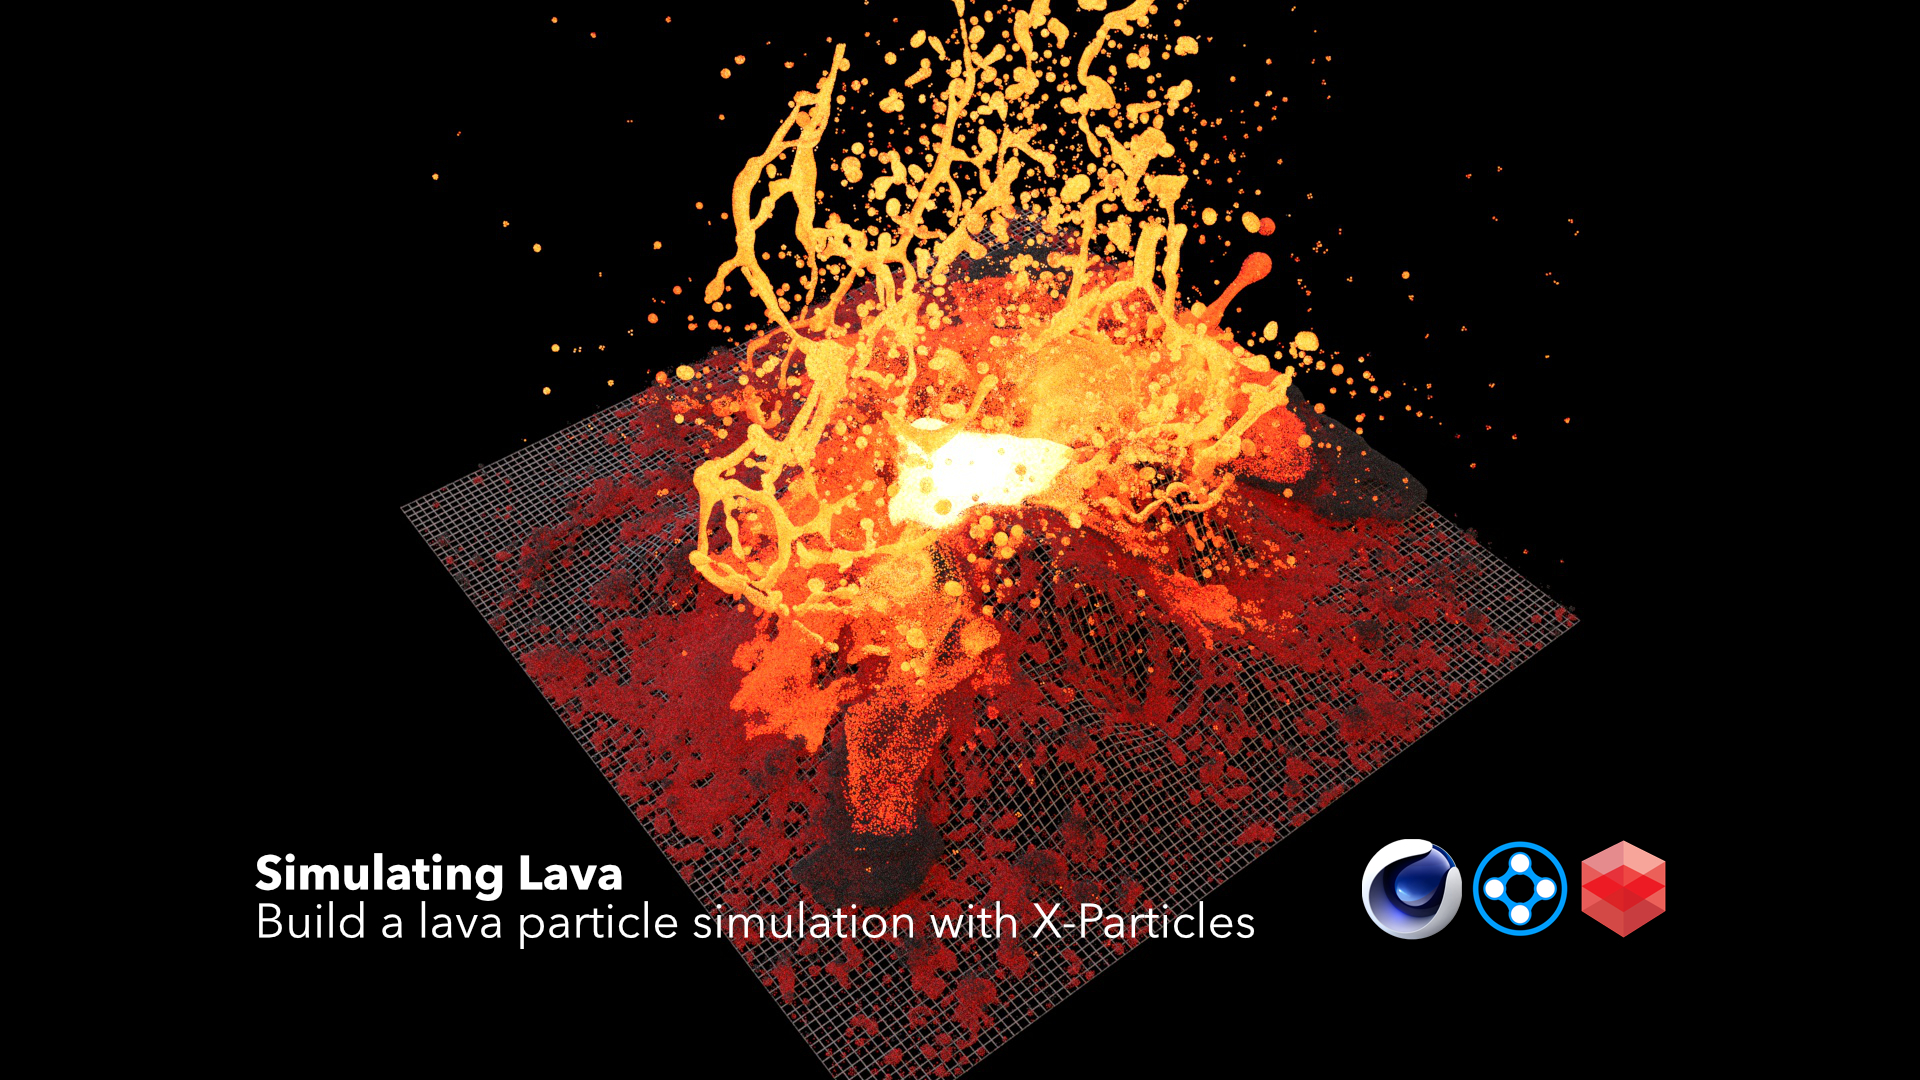 Simulating Lava by David Torno - ProVideo Coalition